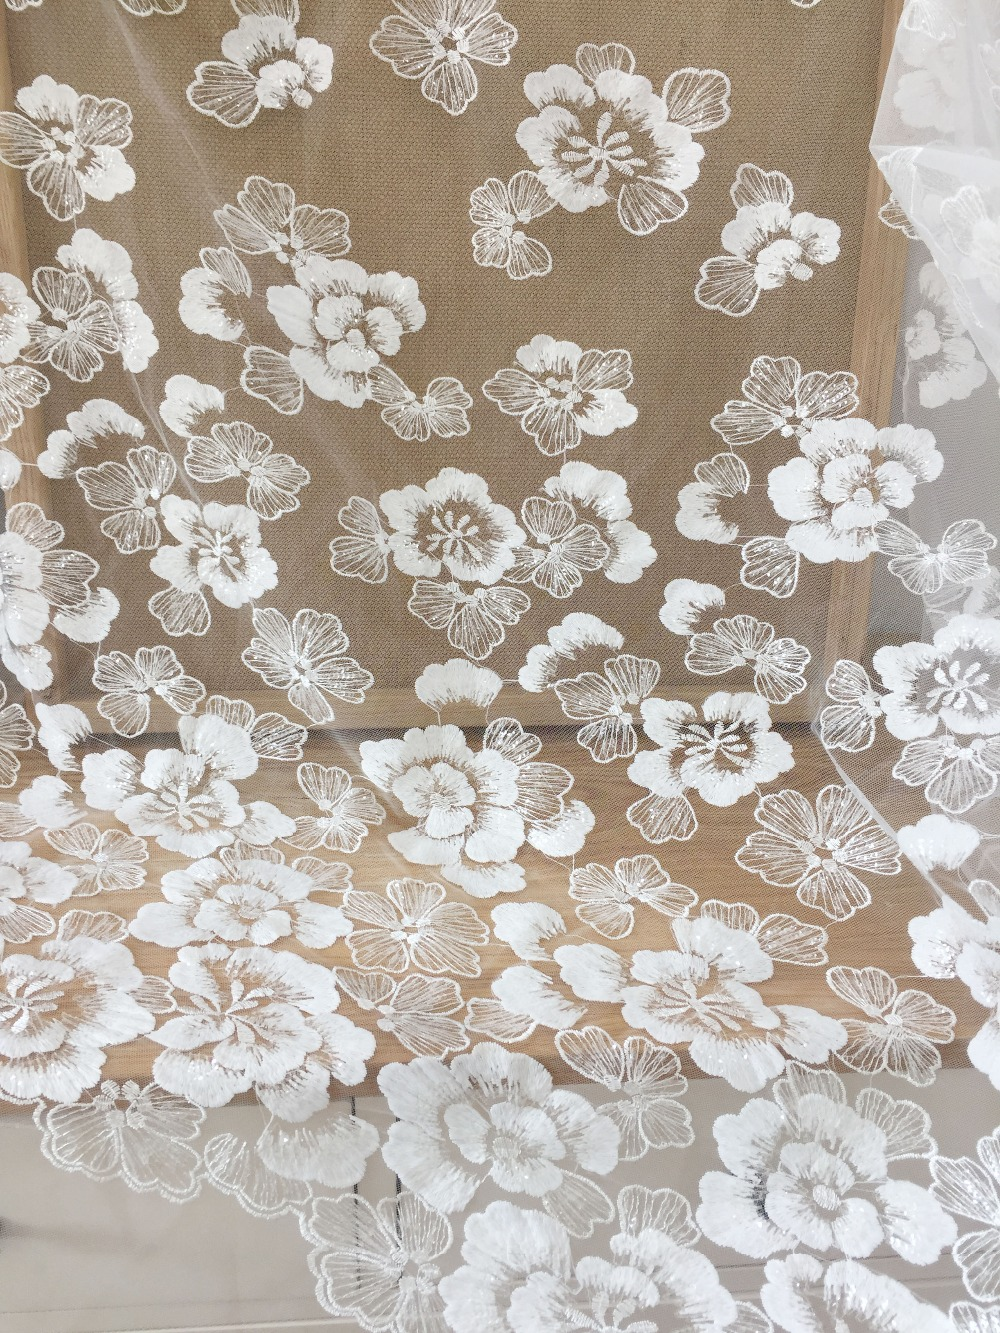 1 Yard Clear Sequin Floral Embroidery Lace Fabric in Off White, Daisy Couture Dress Fabric by Yard for Wedding Gown Bridal Dress